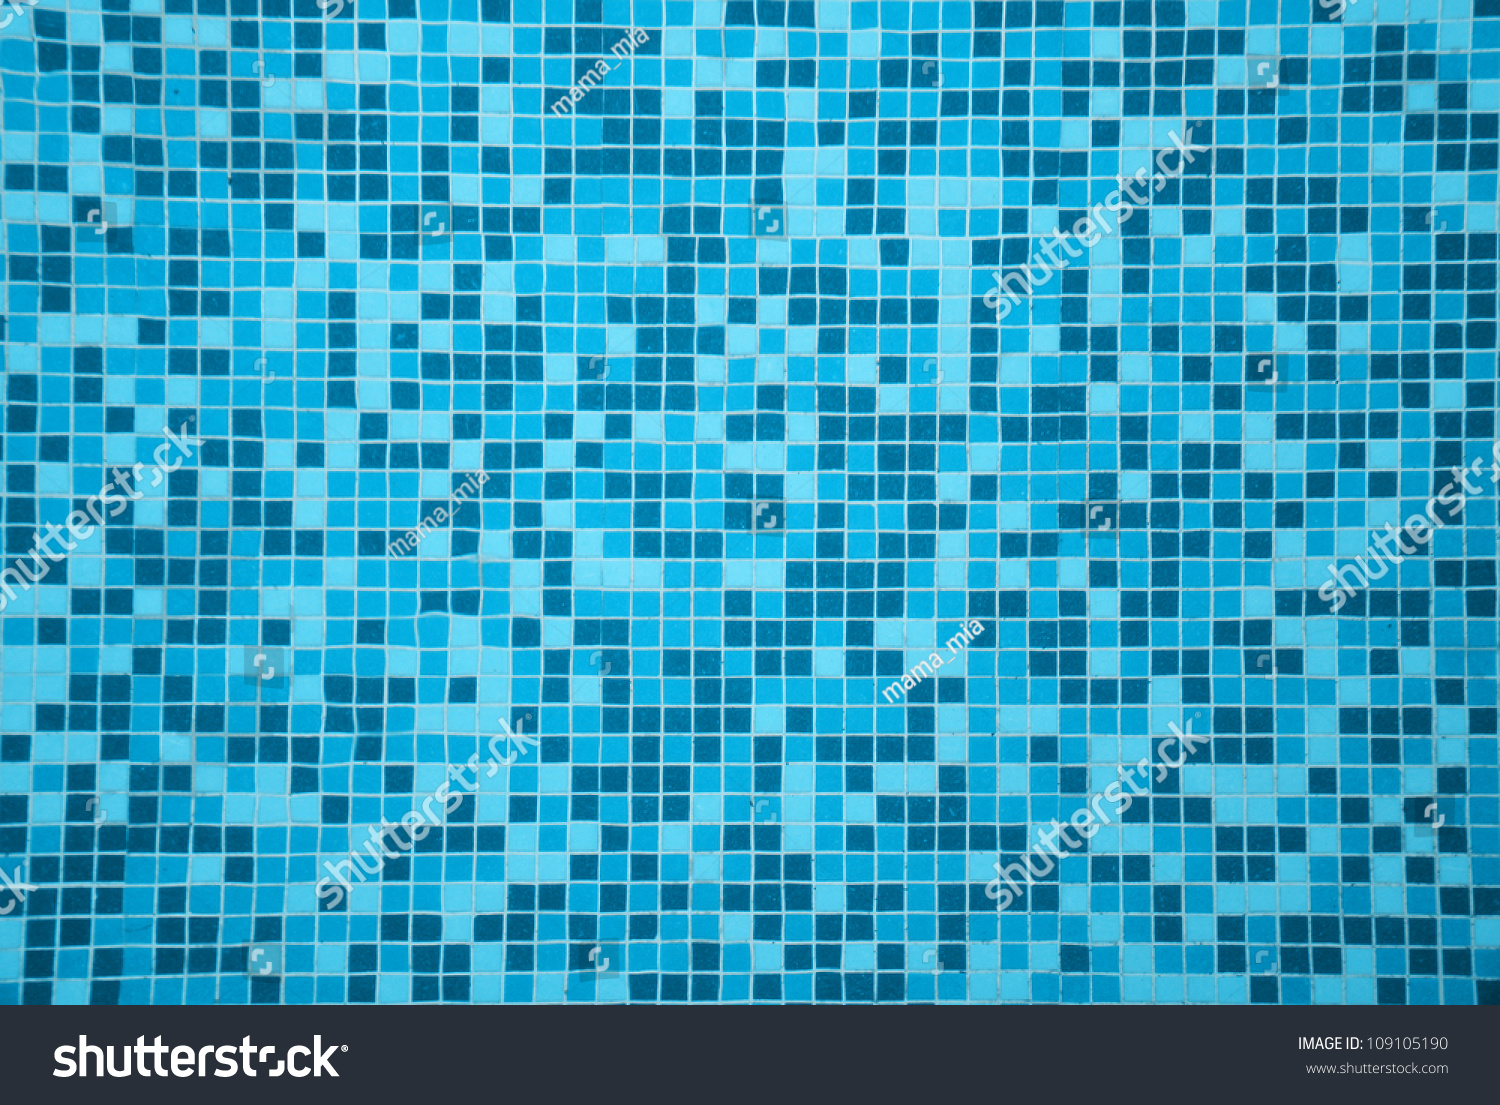 Tile Texture Background Swimming Pool Tiles Stock Photo ...